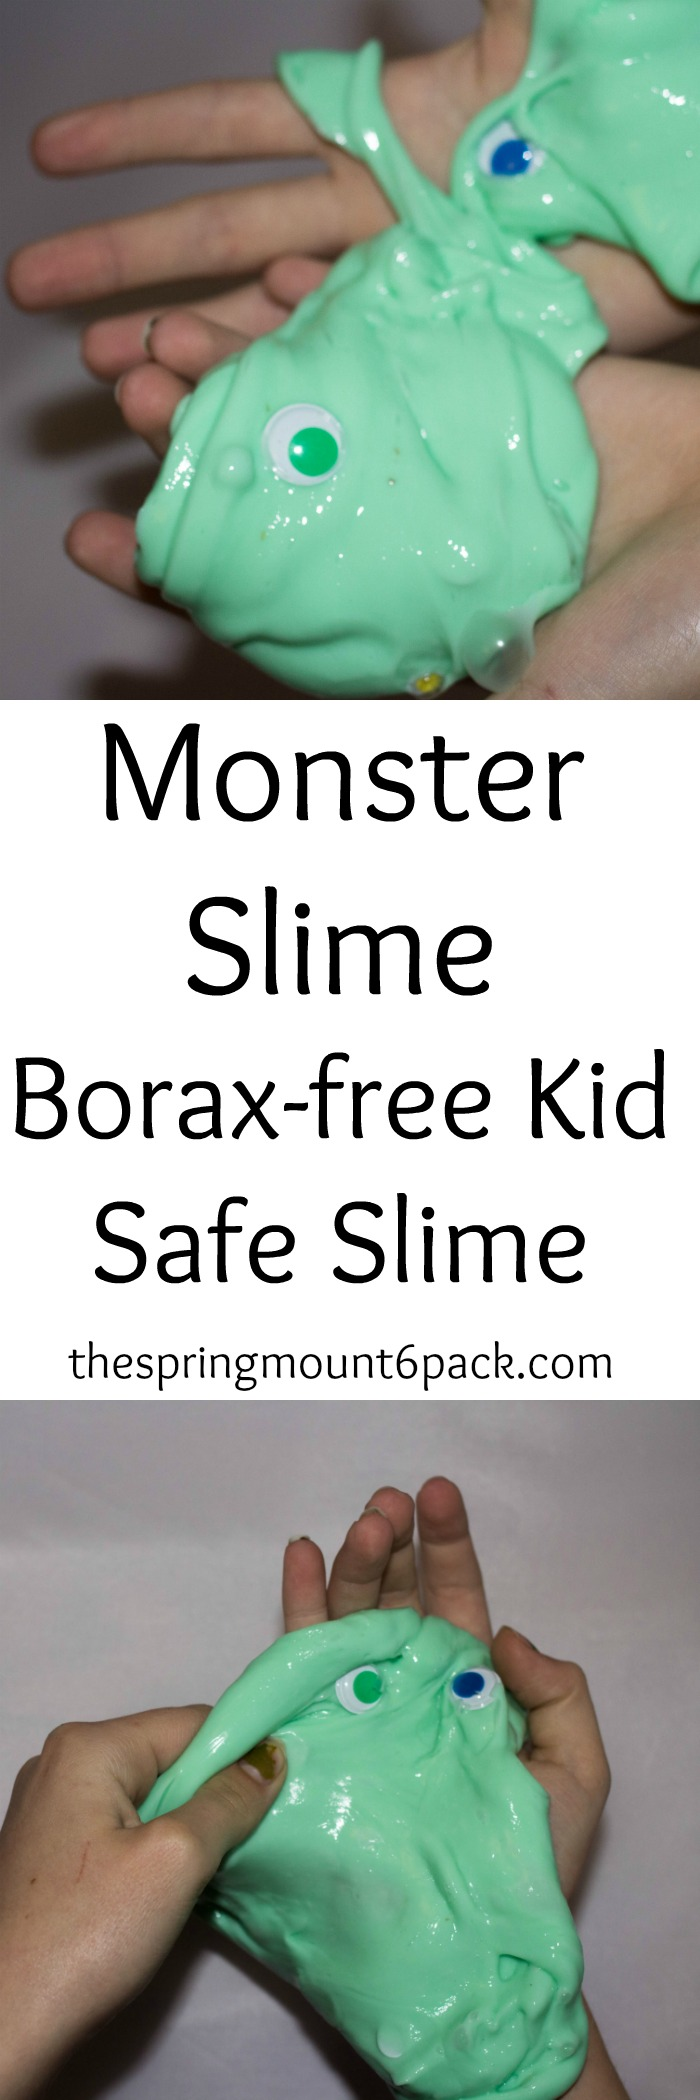 Want to make slime without Borax This is a simple Borax free slime recipe that kids will love thanks to the silly googly eyes that make this monster slime